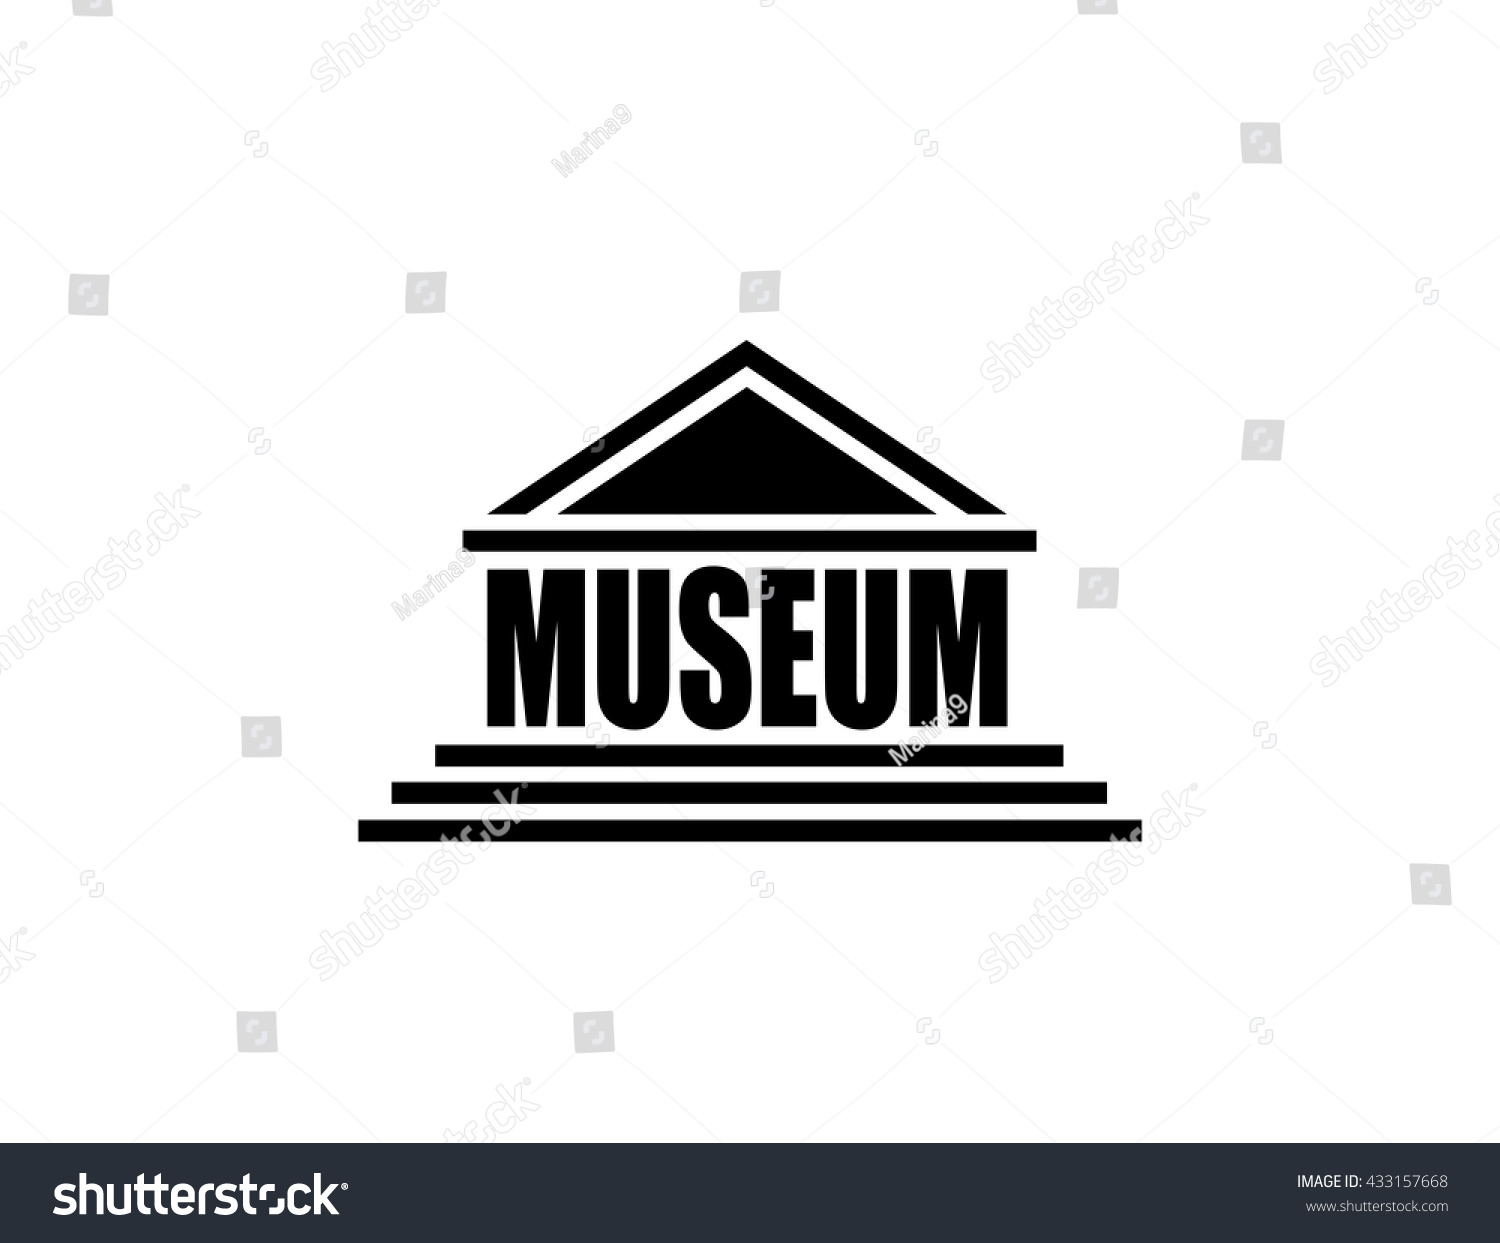 Museum icon isolated on white background stock vector for House music symbol